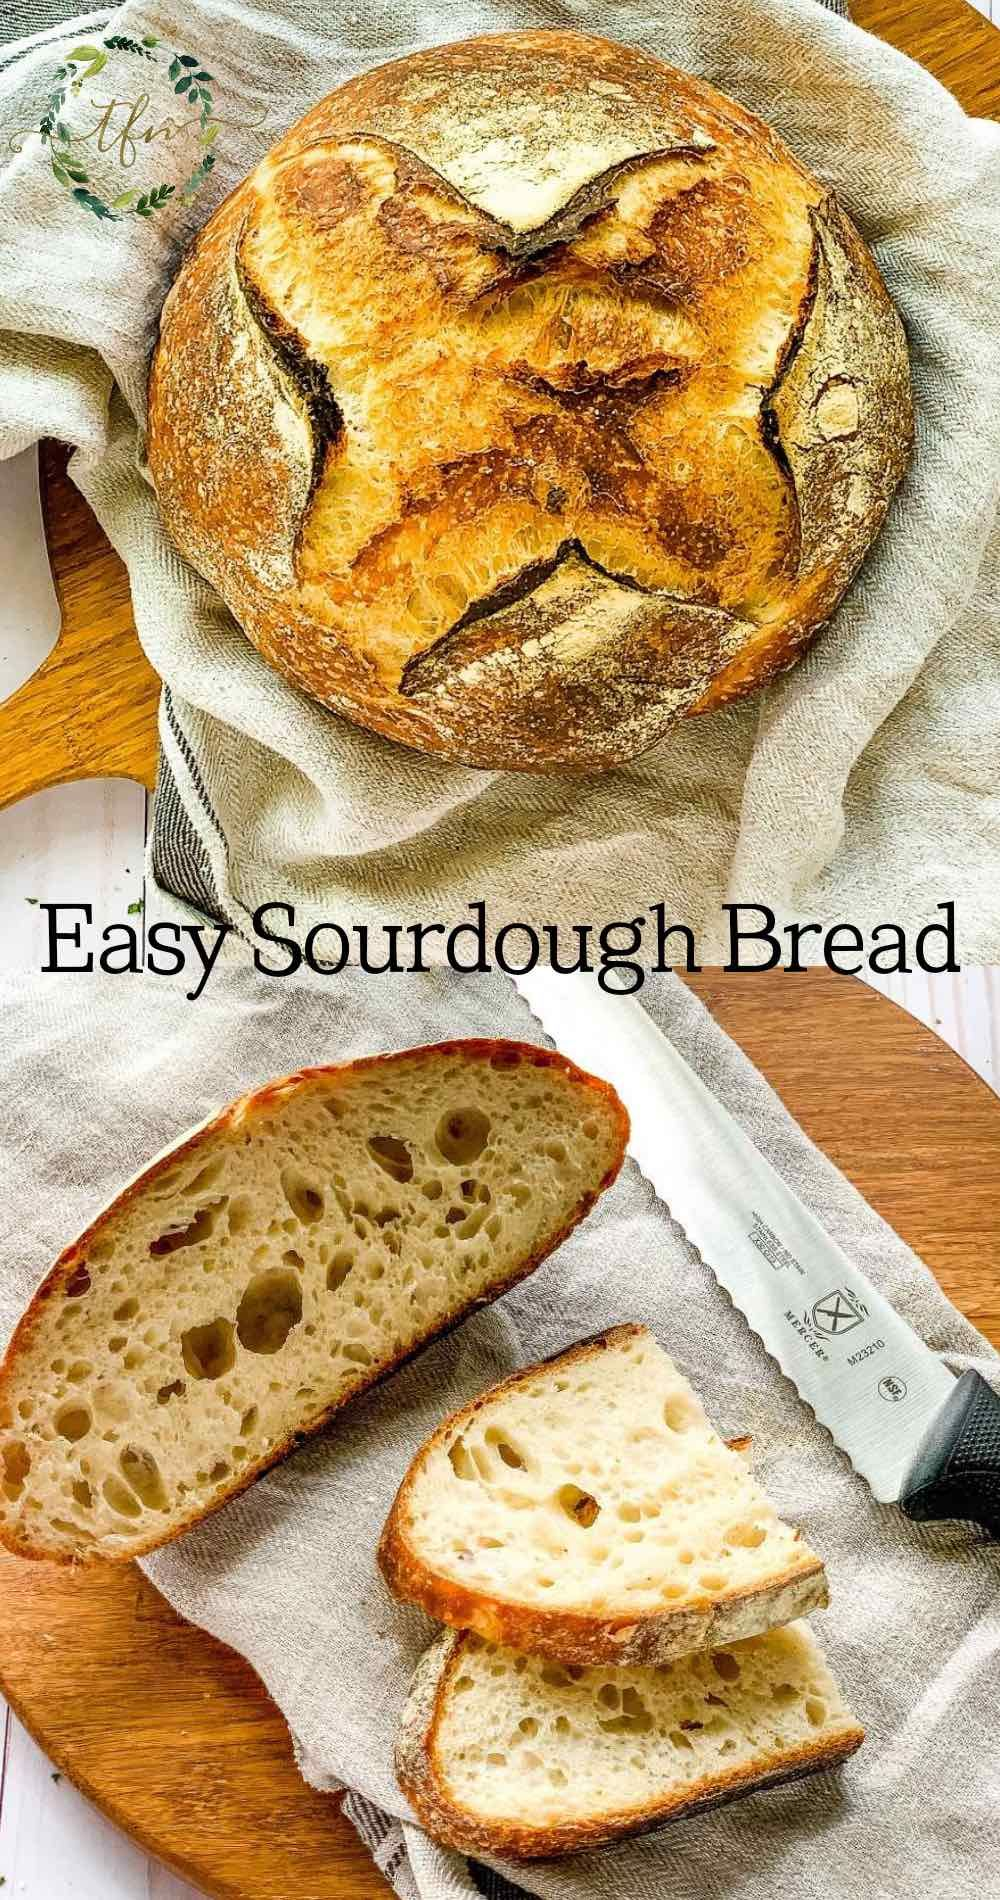 Sourdough Bread Uses Natural Yeast You Can Make Right At Home Add A Little Flour Water And Salt To Make Bread With This Very In 2020 Sourdough Bread Sourdough Bread